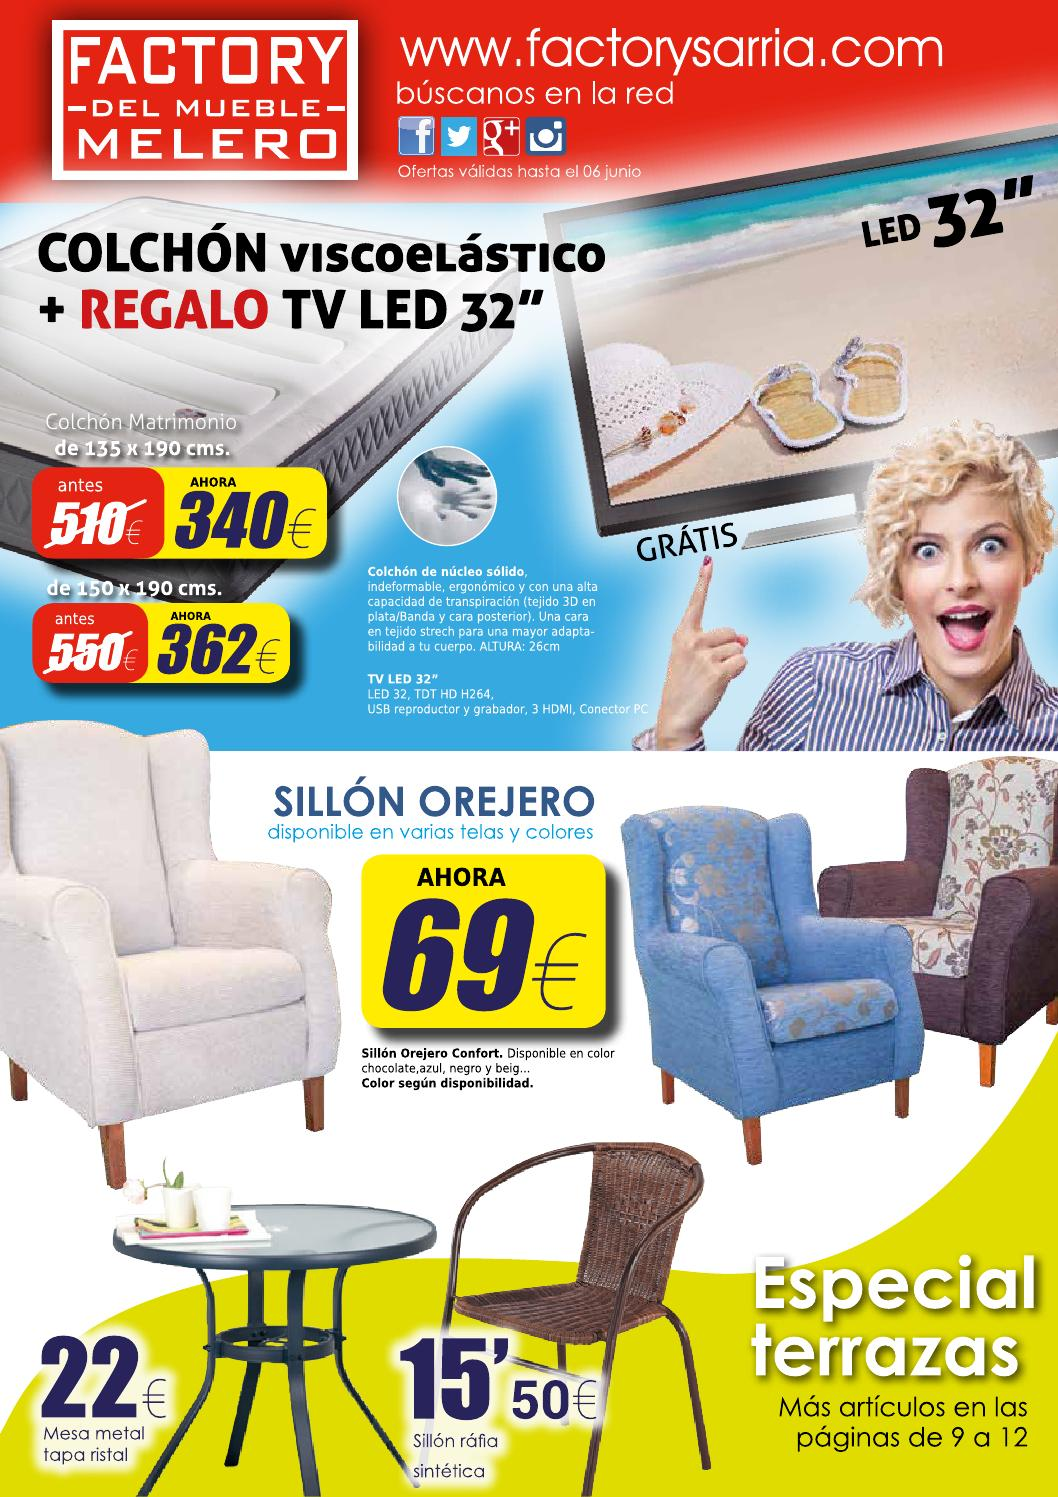 ofertas factory del mueble melero abril 2015 by factory